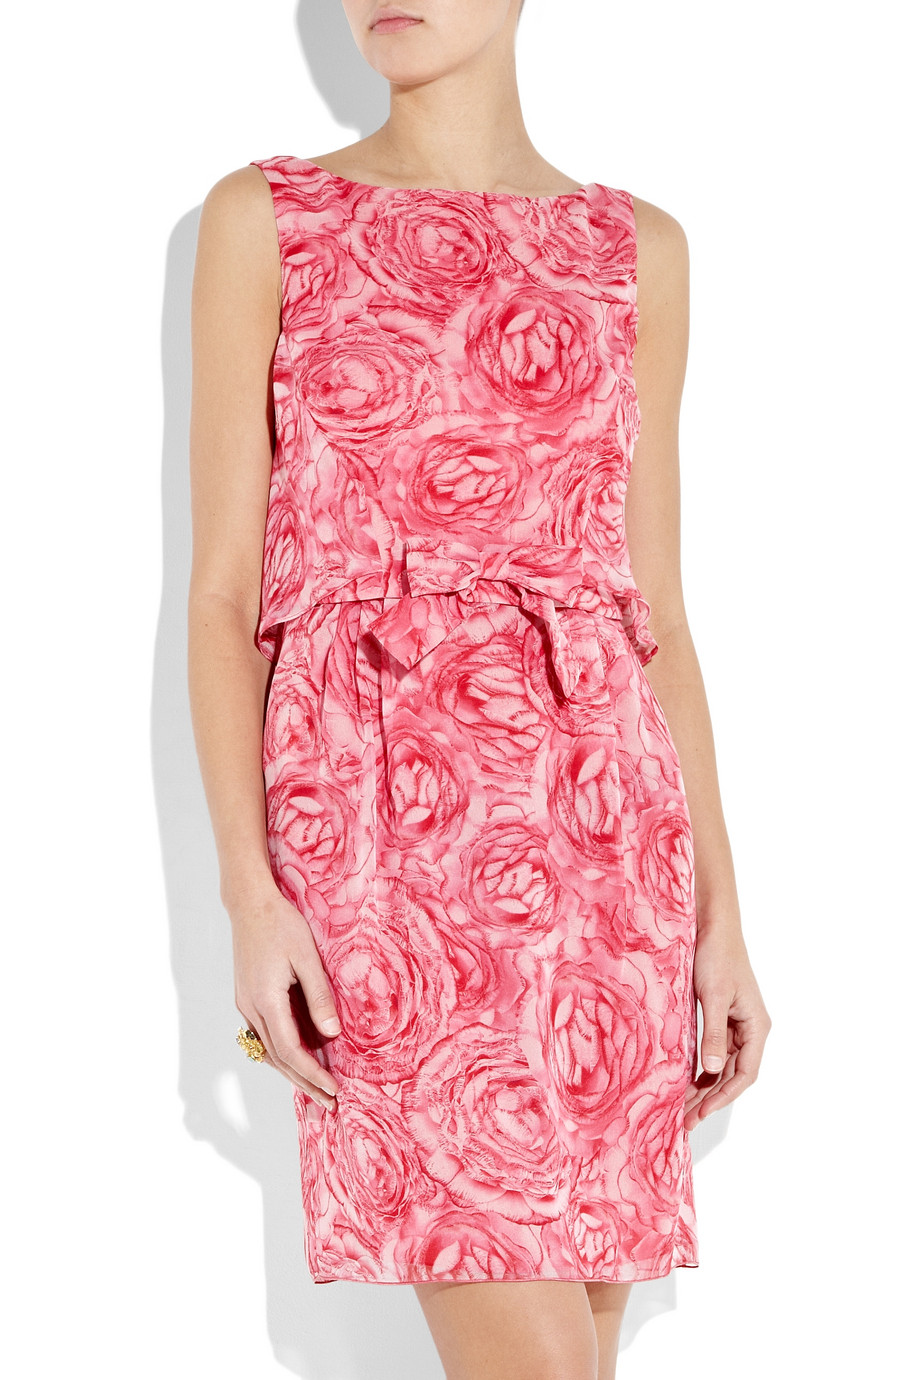 Giambattista Valli Floral Print Silk Chiffon Dress In Pink